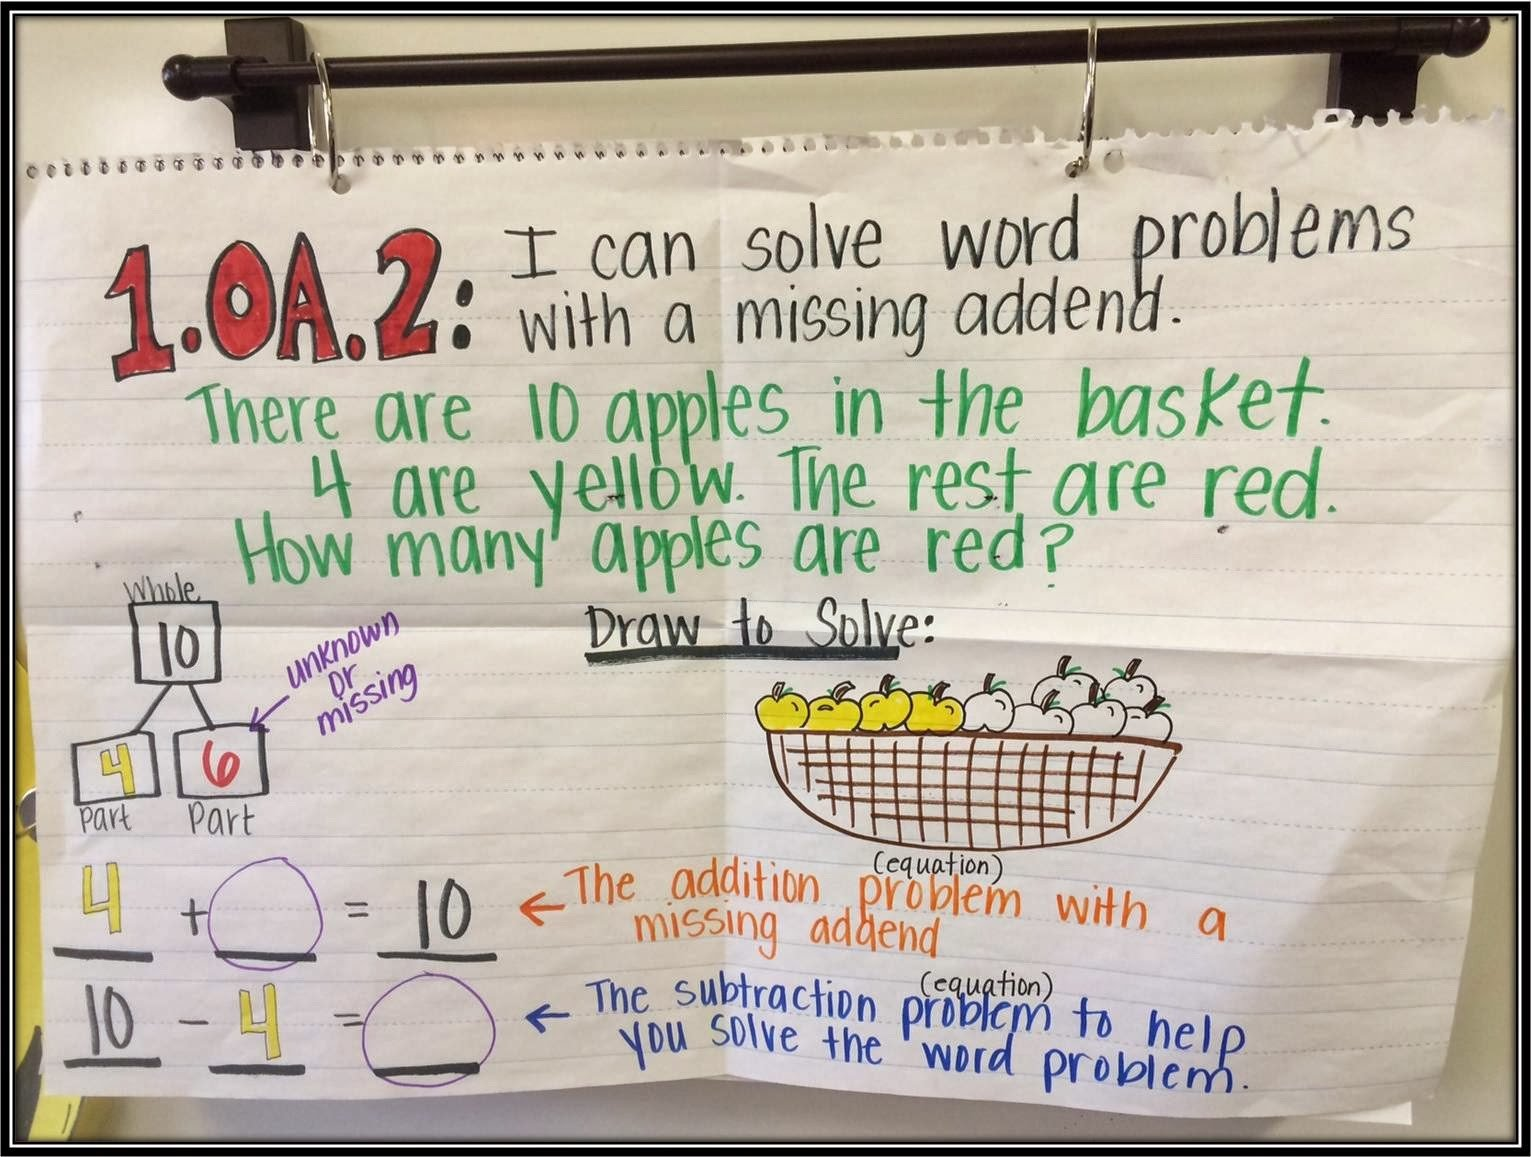 Missing Addends Worksheets First Grade First Grade Fairytales Missing Addends Word Problems & A